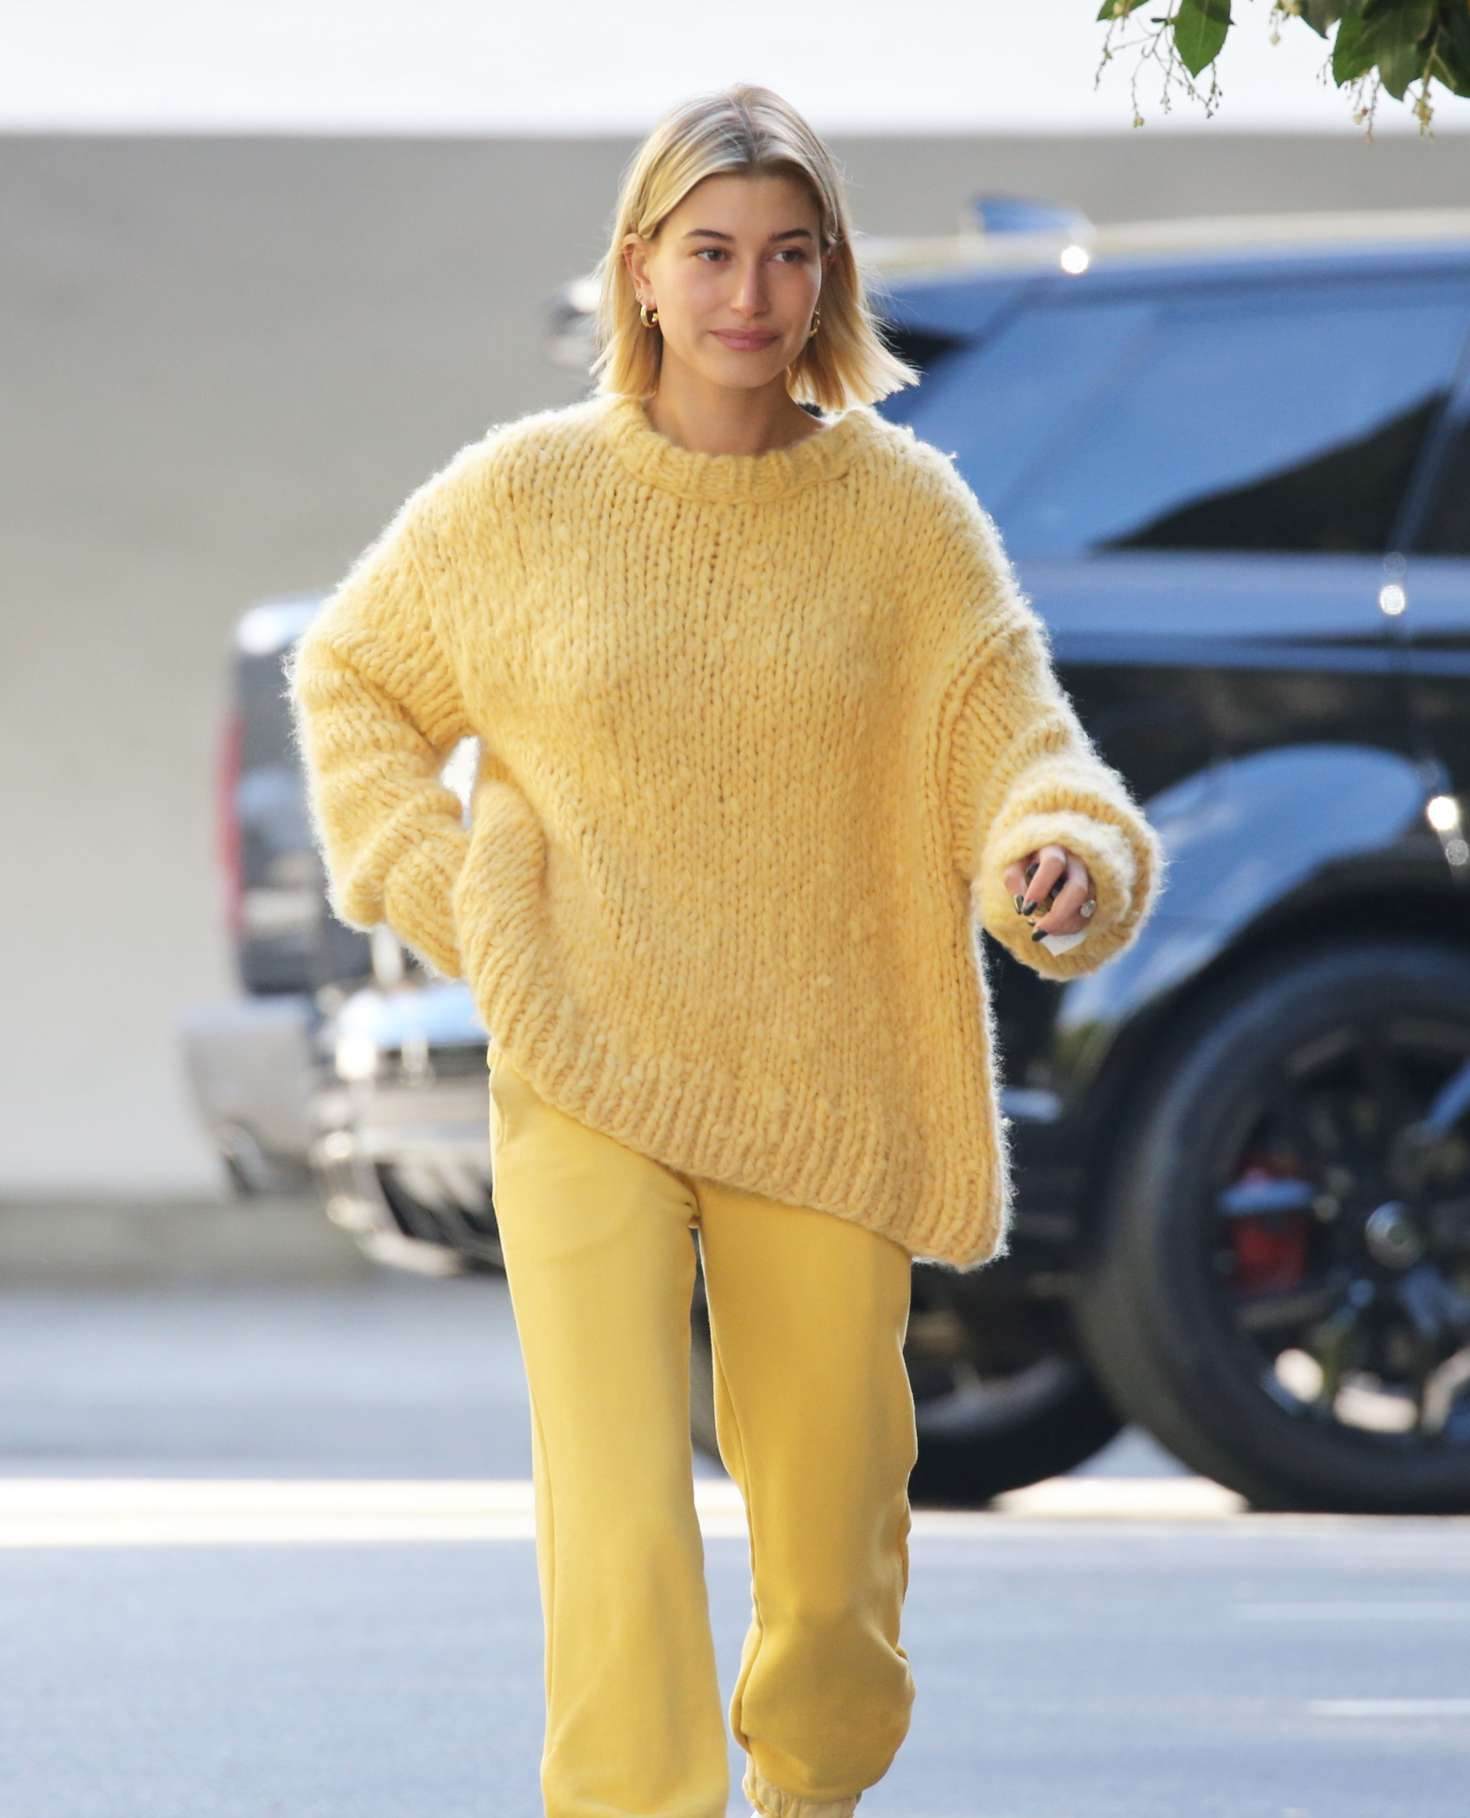 Hailey Baldwin in Yellow Outfit - Out in Beverly Hills